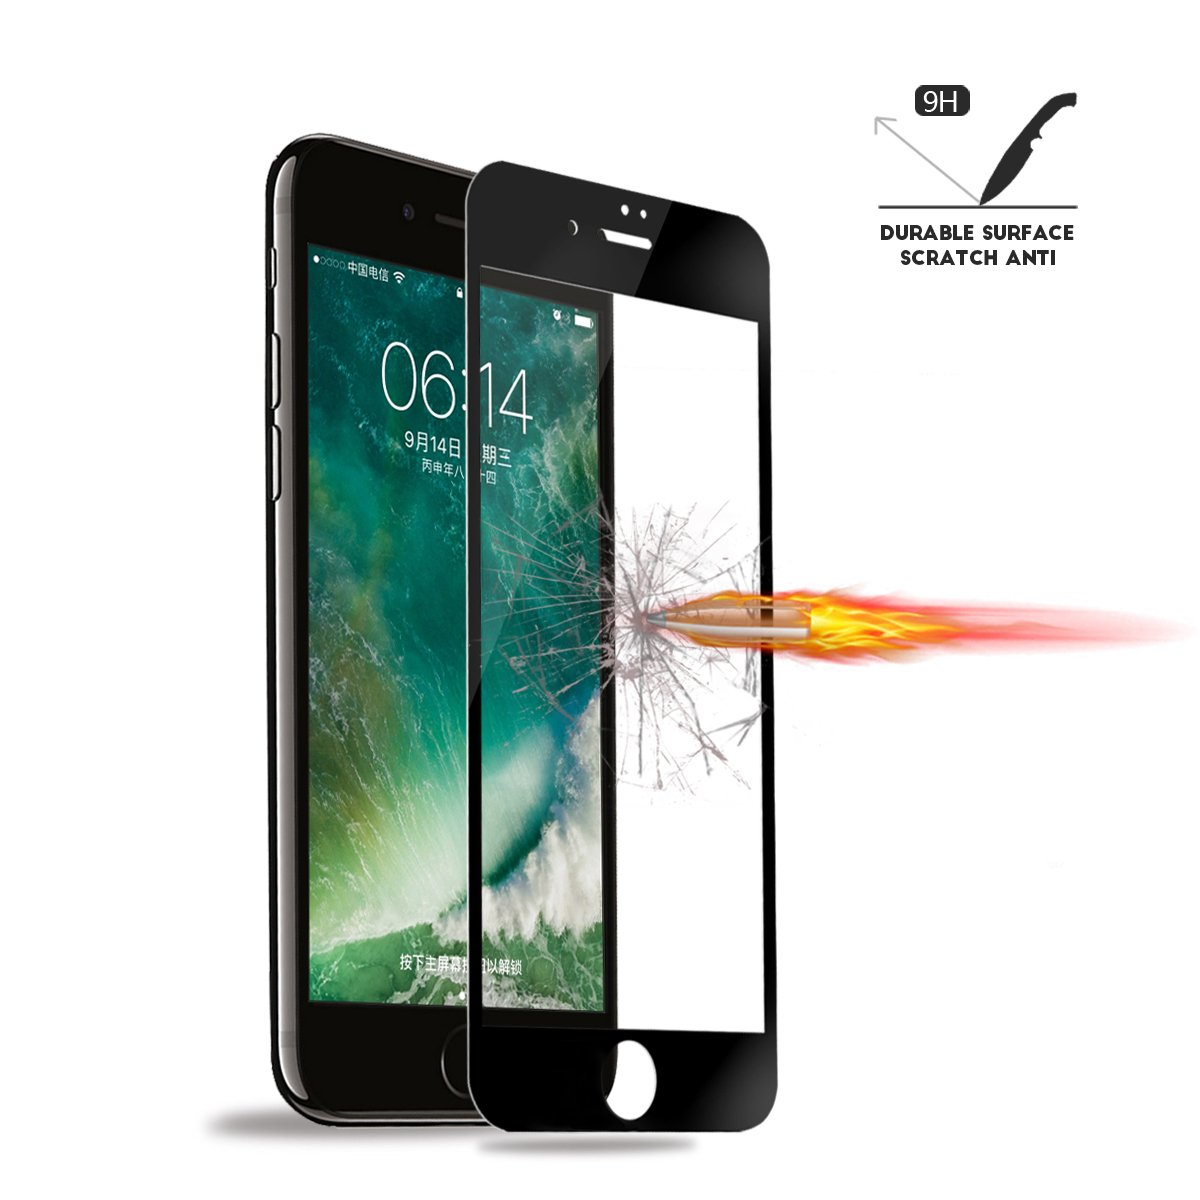 (Pack of 2) Screen Protector for iPhone 7 Plus 8 Plus, Akwox Full Cover iPhone 7 Plus 8 Plus Tempered Glass Screen Protector with ABS Curved Edge Frame, Anti-Fingerprint (Black) by AKWOX (Image #3)